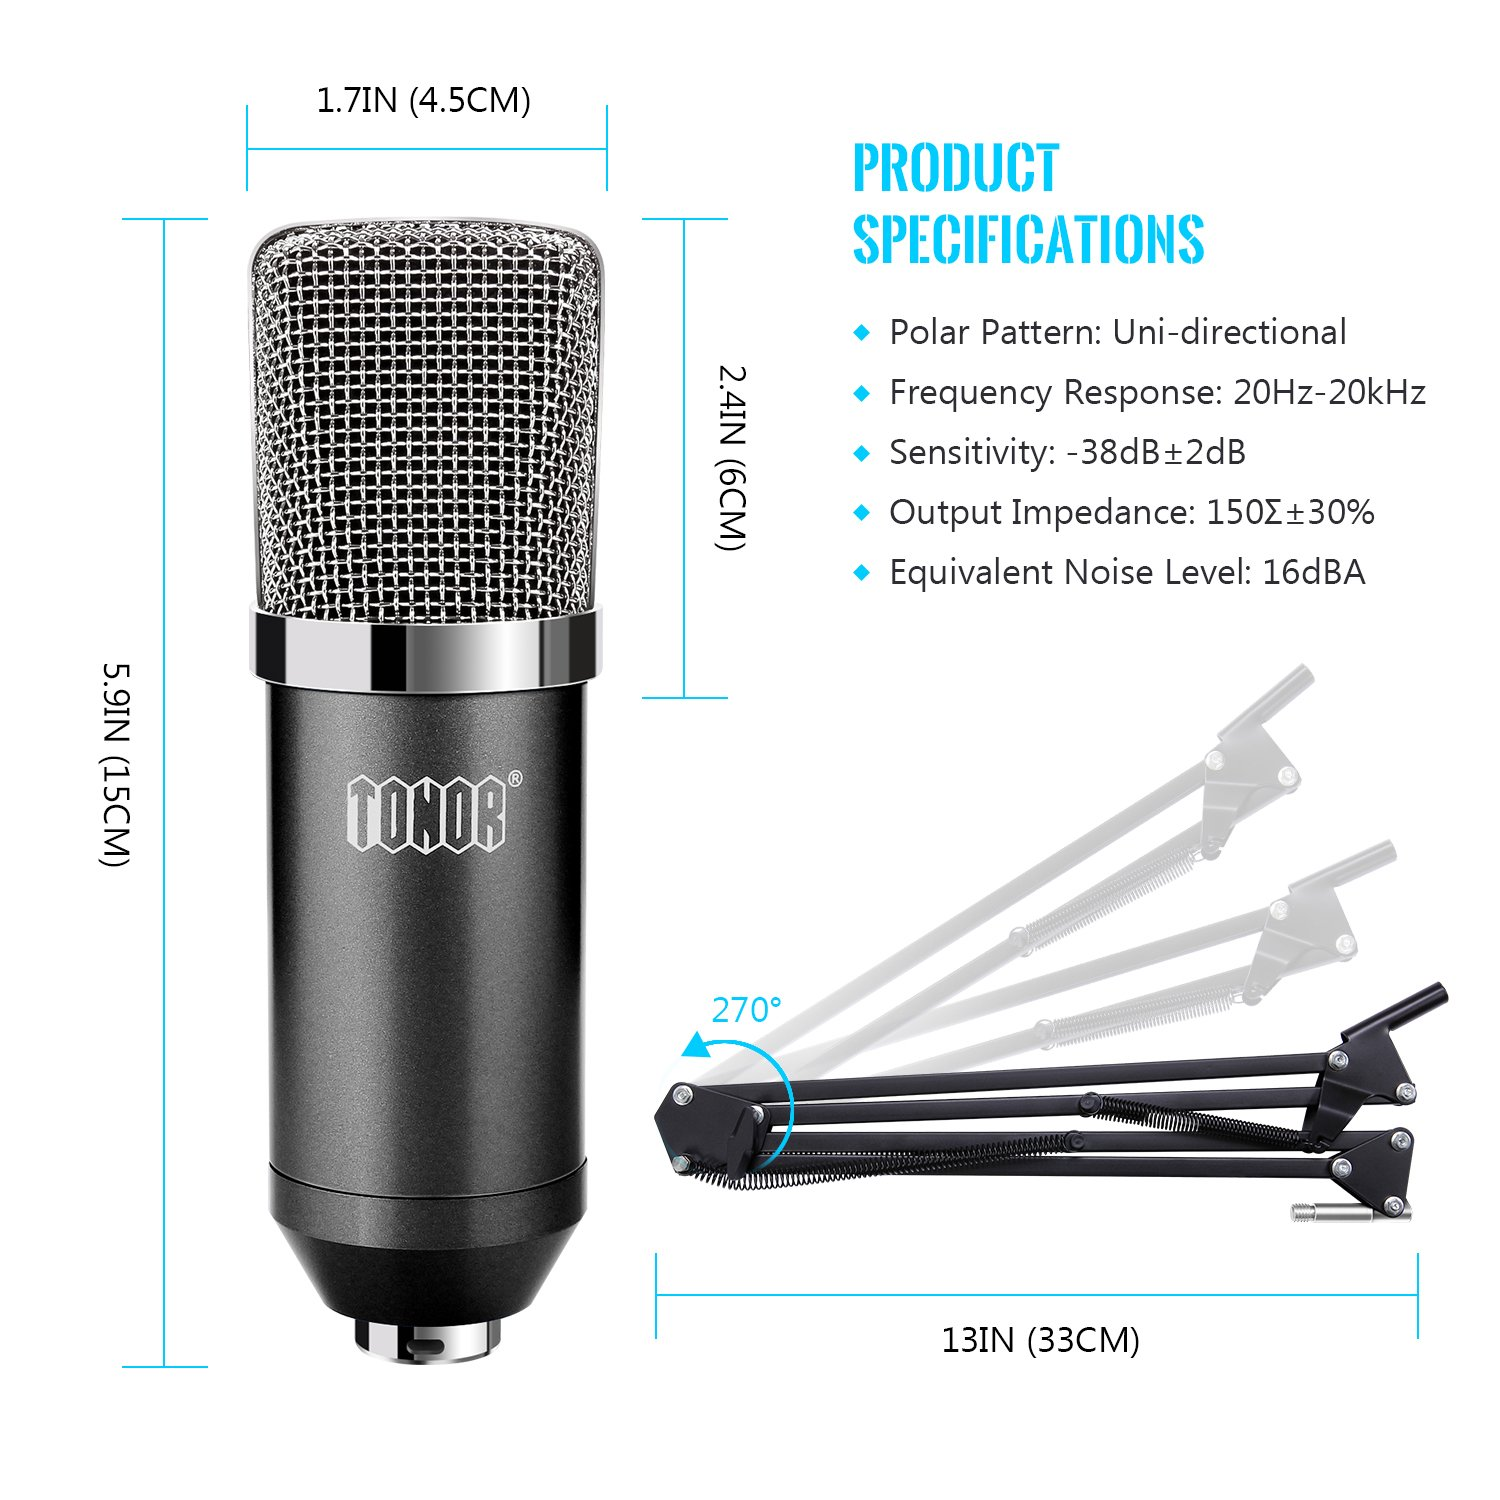 TONOR Professional Condenser Microphone XLR to 3.5mm Podcasting Studio Recording Condenser Microphone Kit Computer Mics with 48V Phantom Power Supply Black